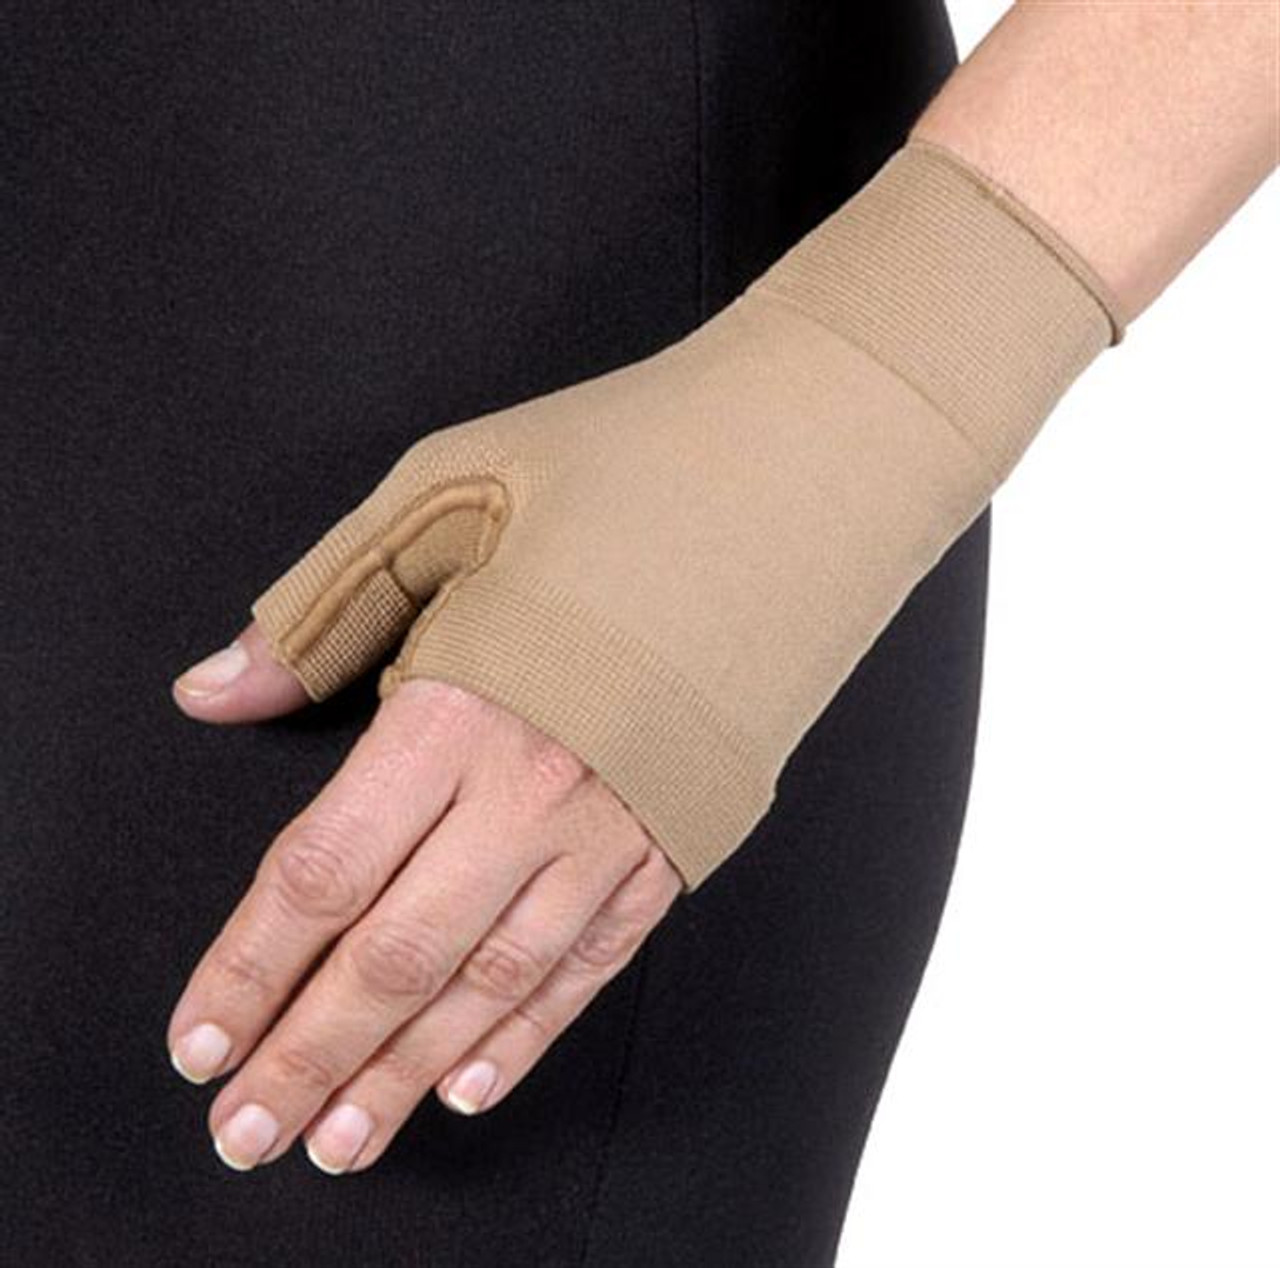 4beb7dd741b Jobst Bella Strong Ready-to-Wear Hand Gauntlet - MastectomyShop.com